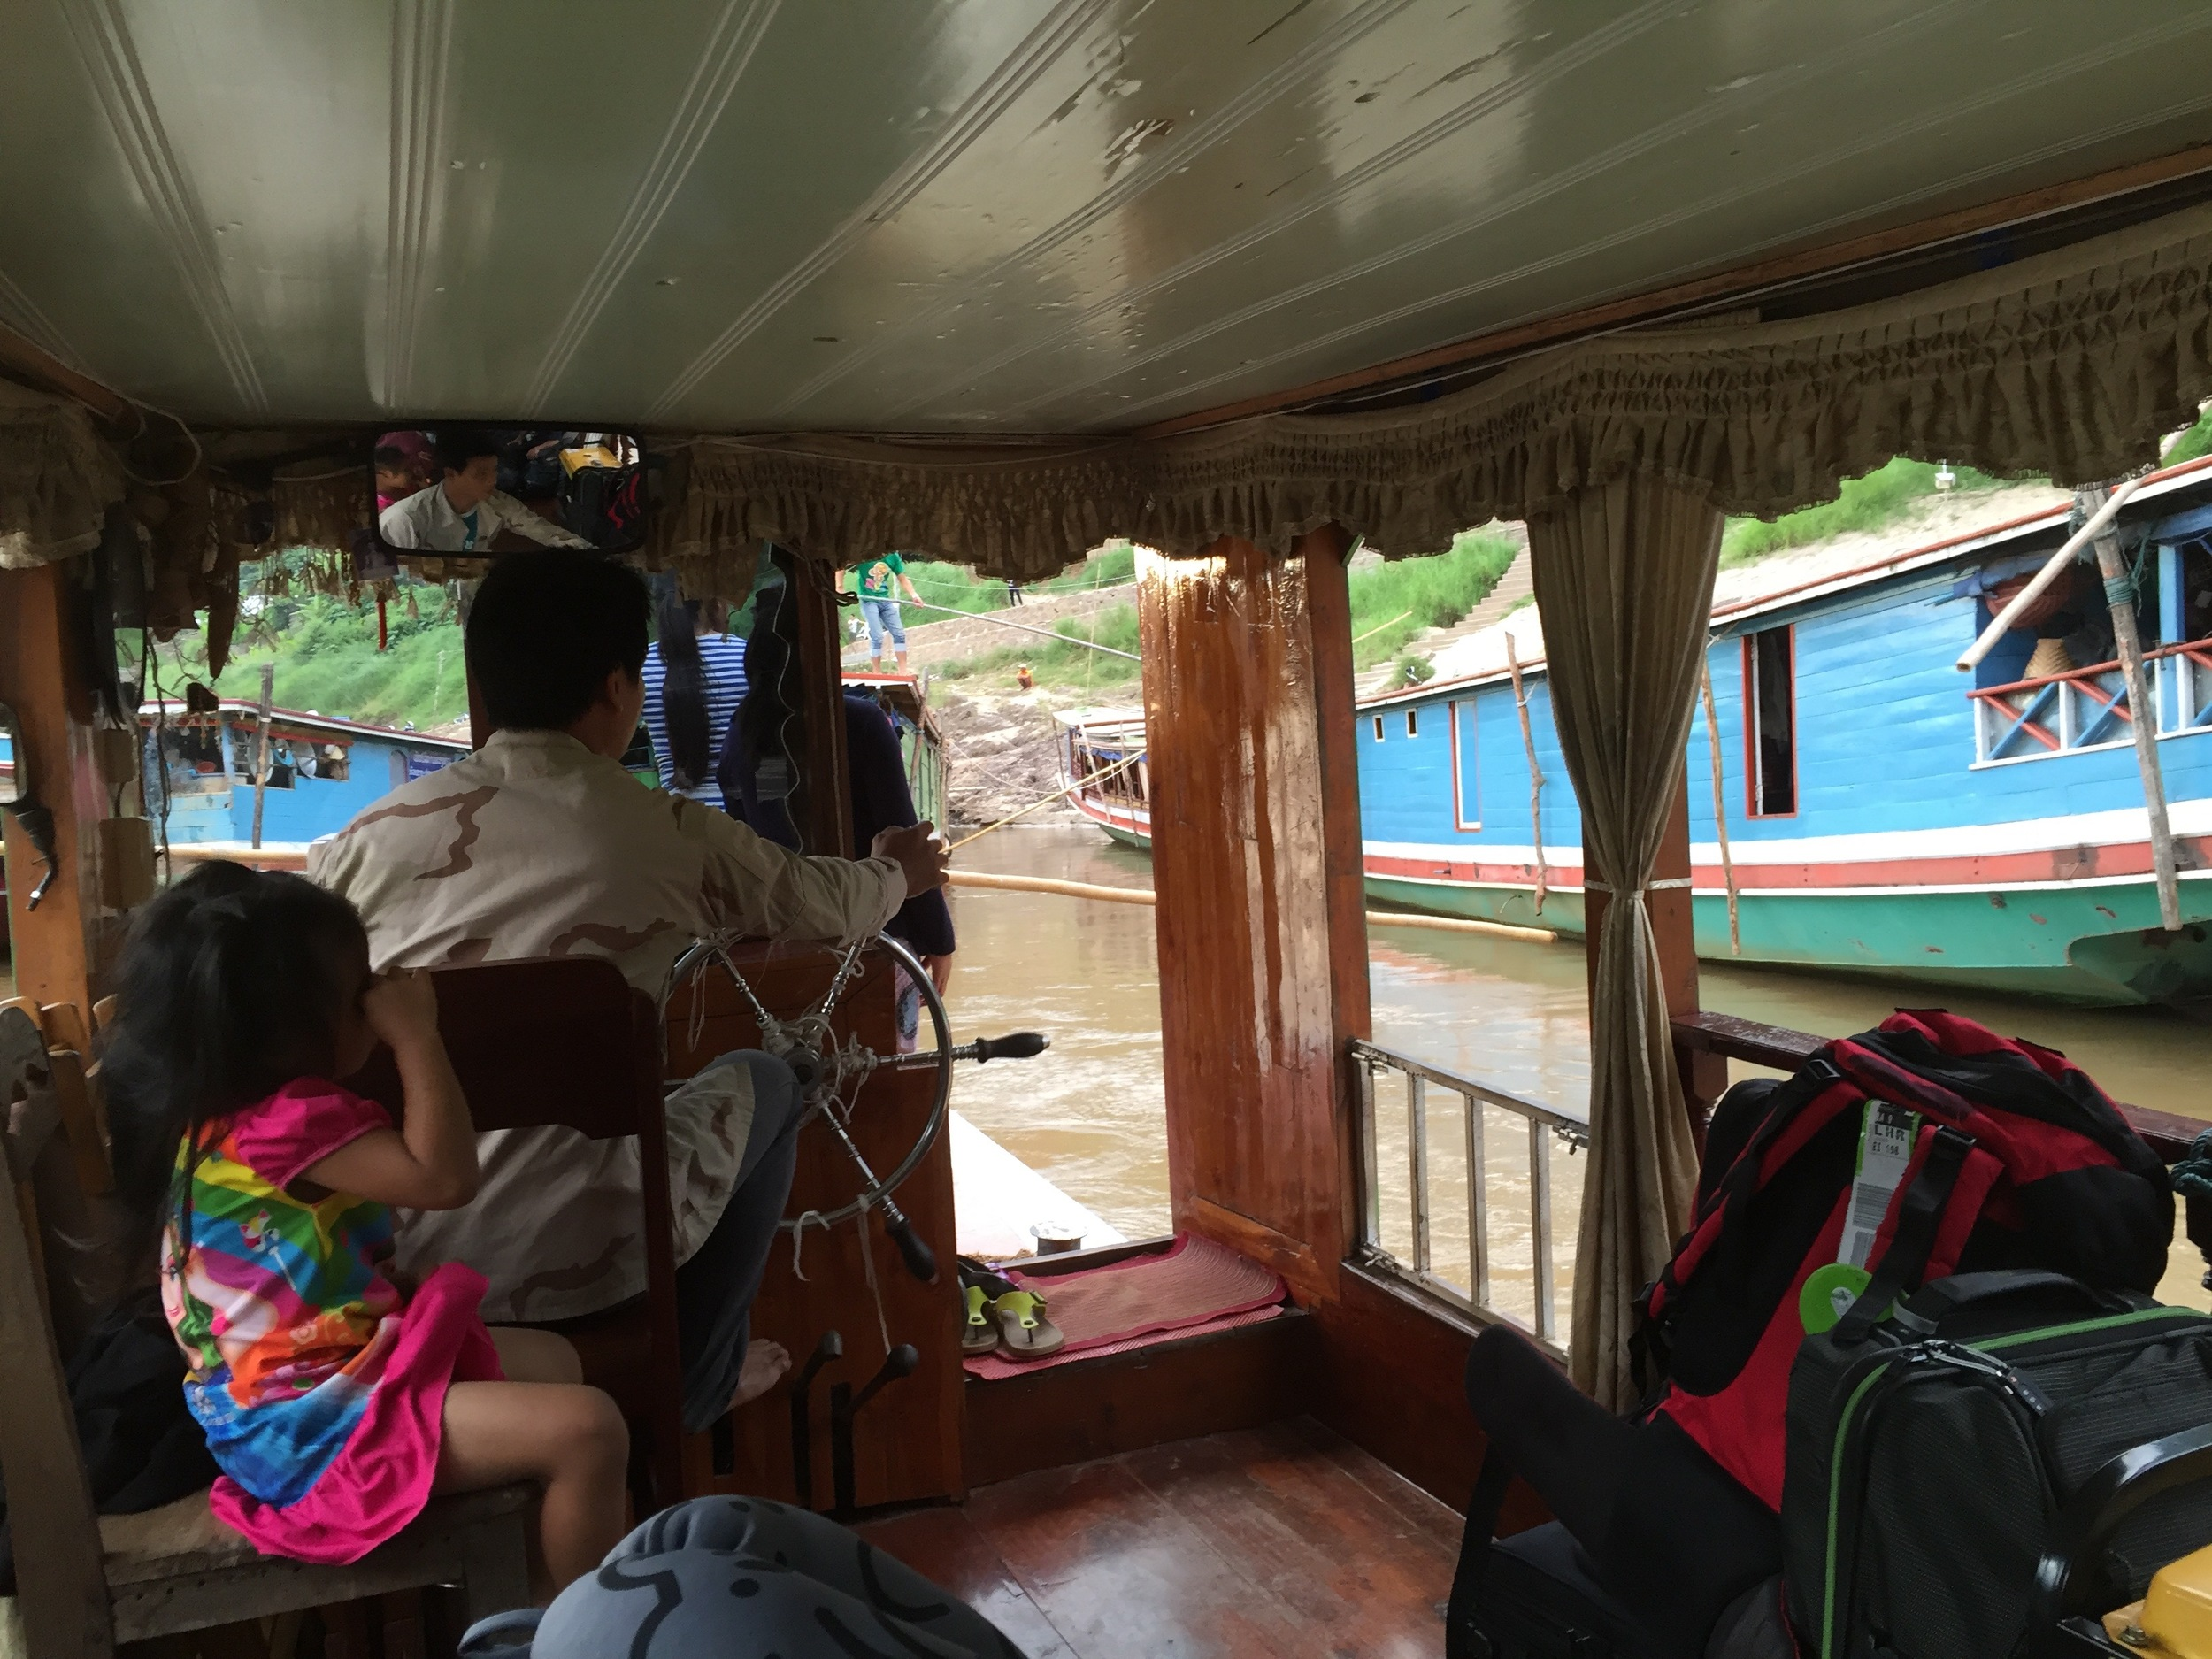 Our tour group cruised the Mekong River for two days in this river boat owned and operated by a Lao family. These boats are a thriving part of the Lao tourist industry.